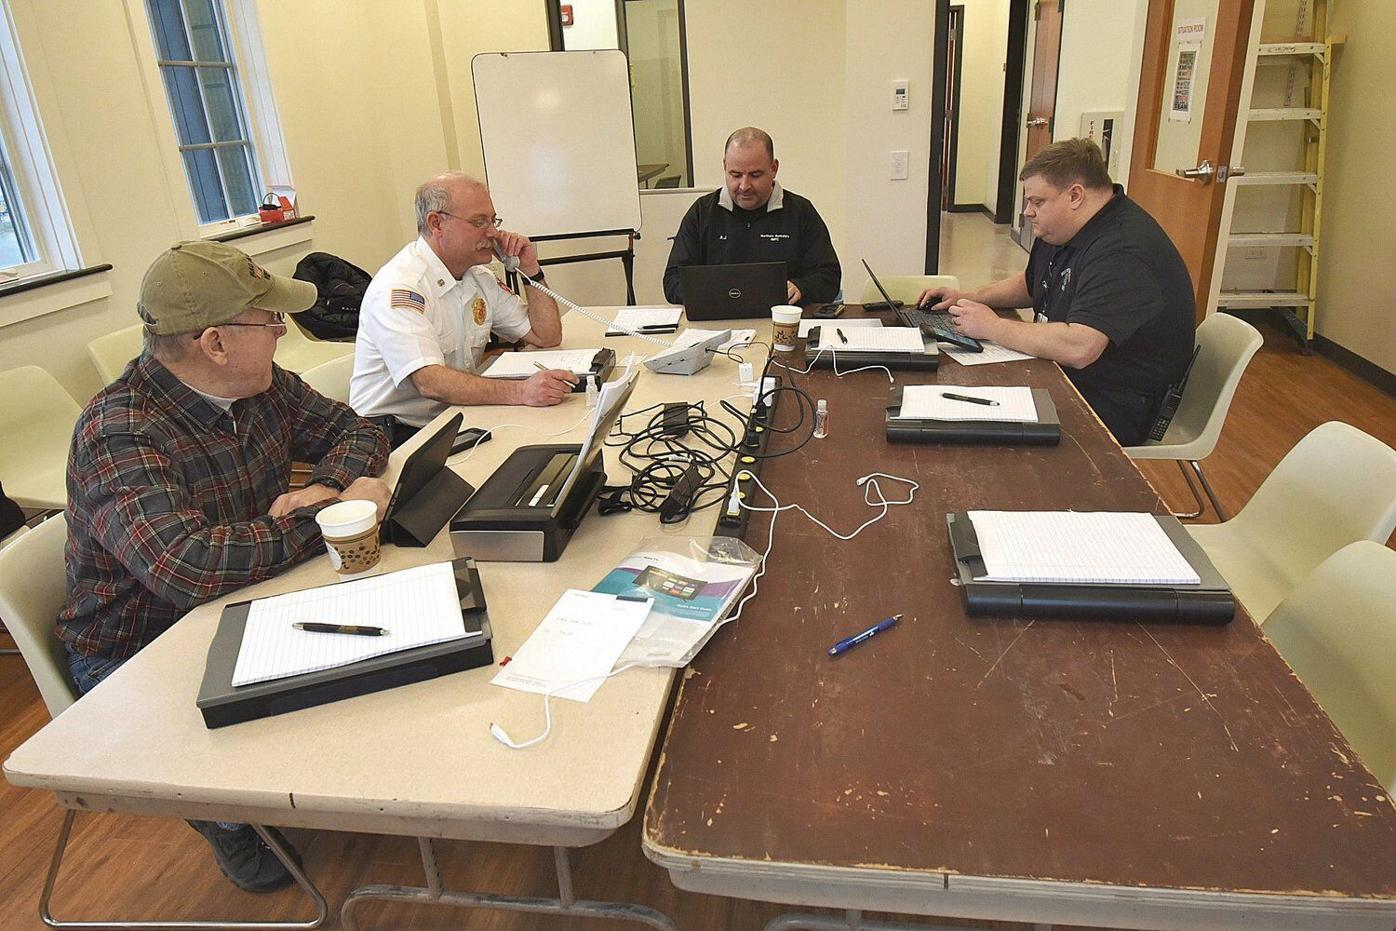 COVID-19 Operations Center established for Northern Berkshire (copy)